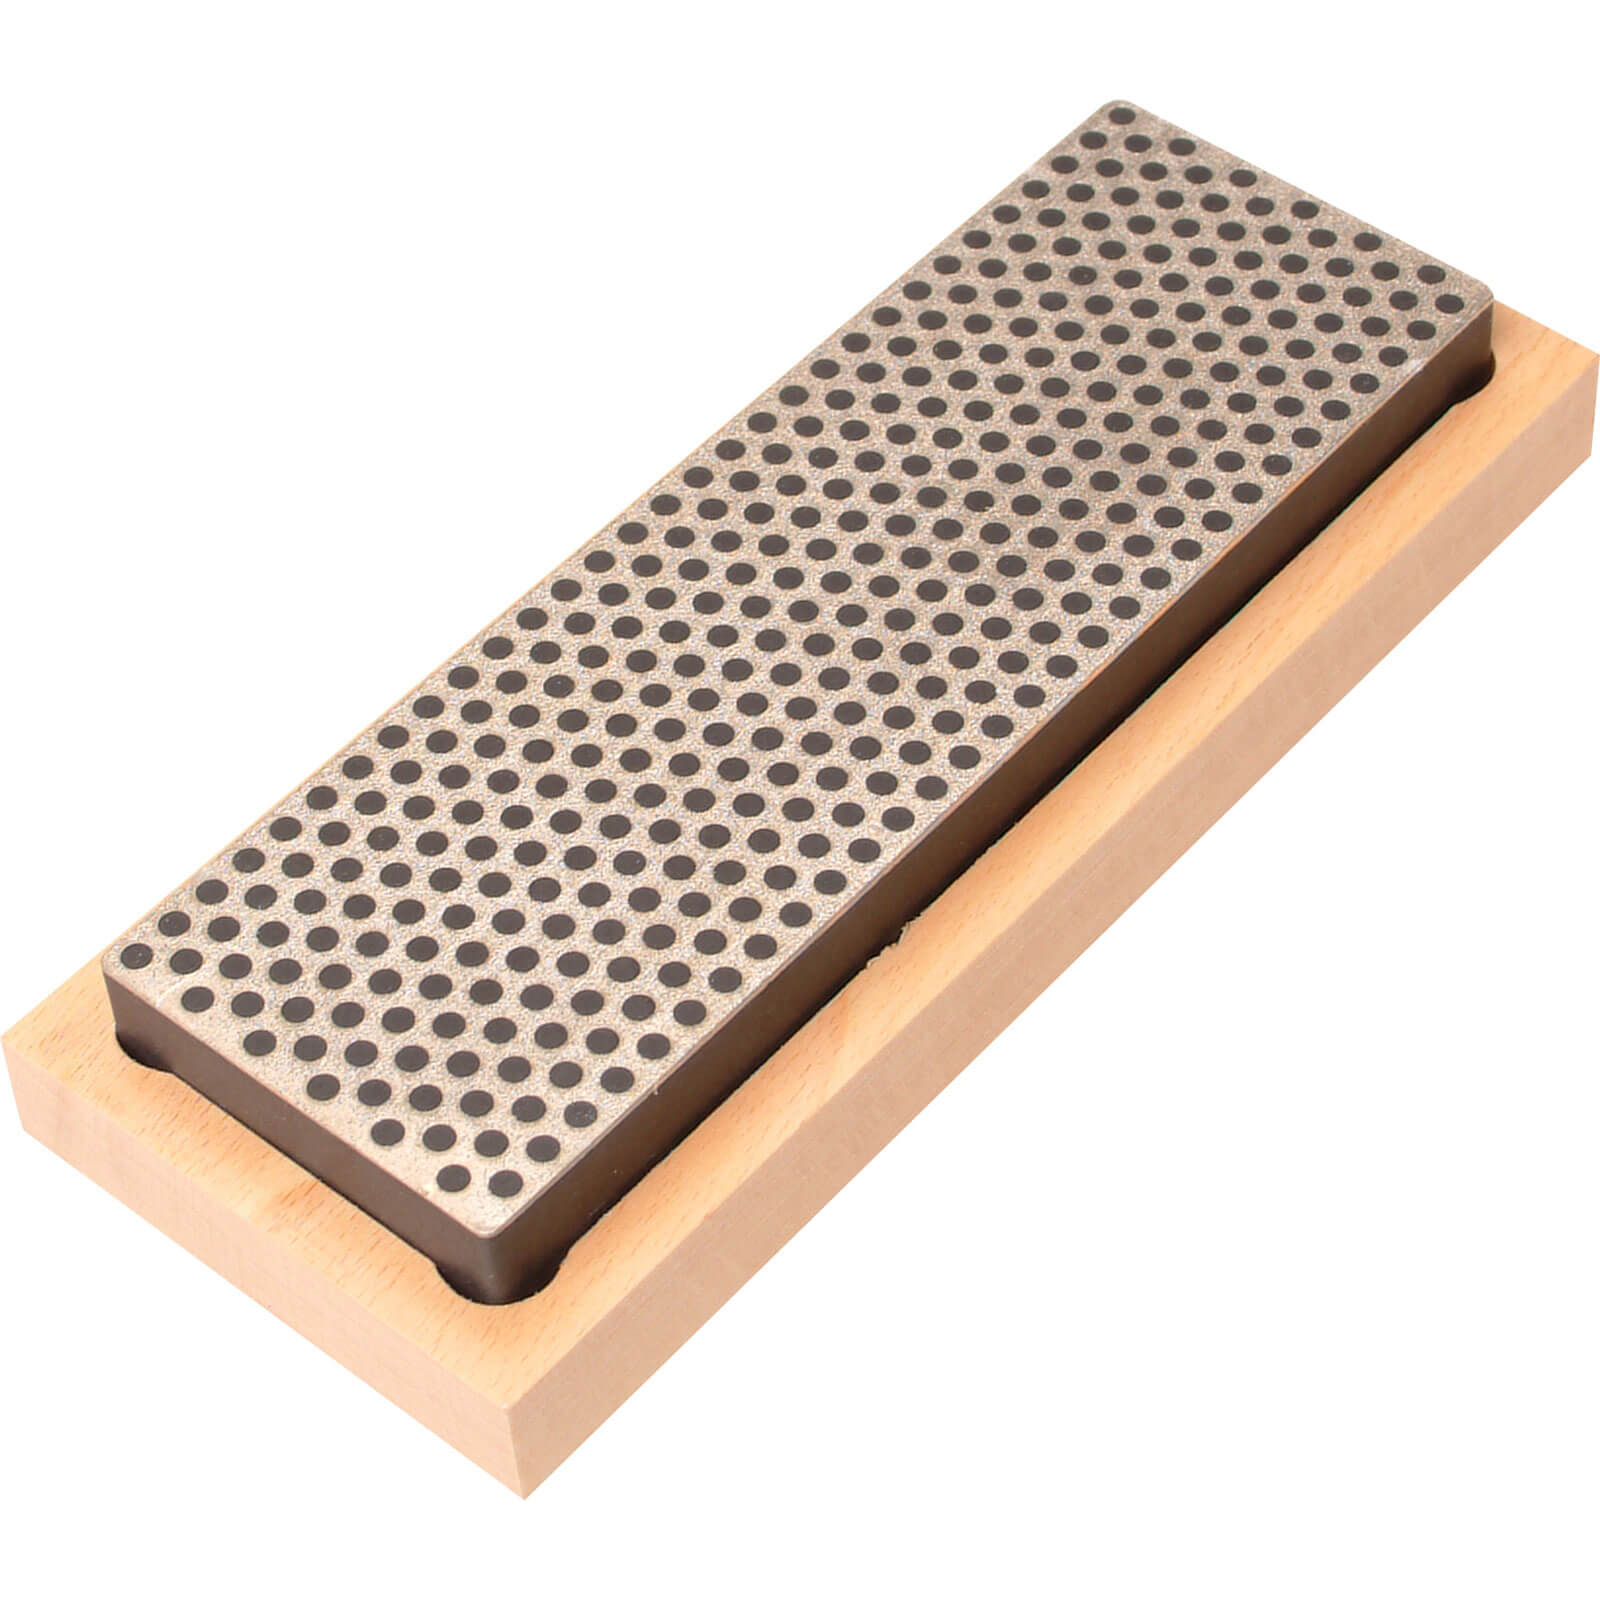 DMT 150mm Diamond Whetstone and Wooden Case Extra Coarse